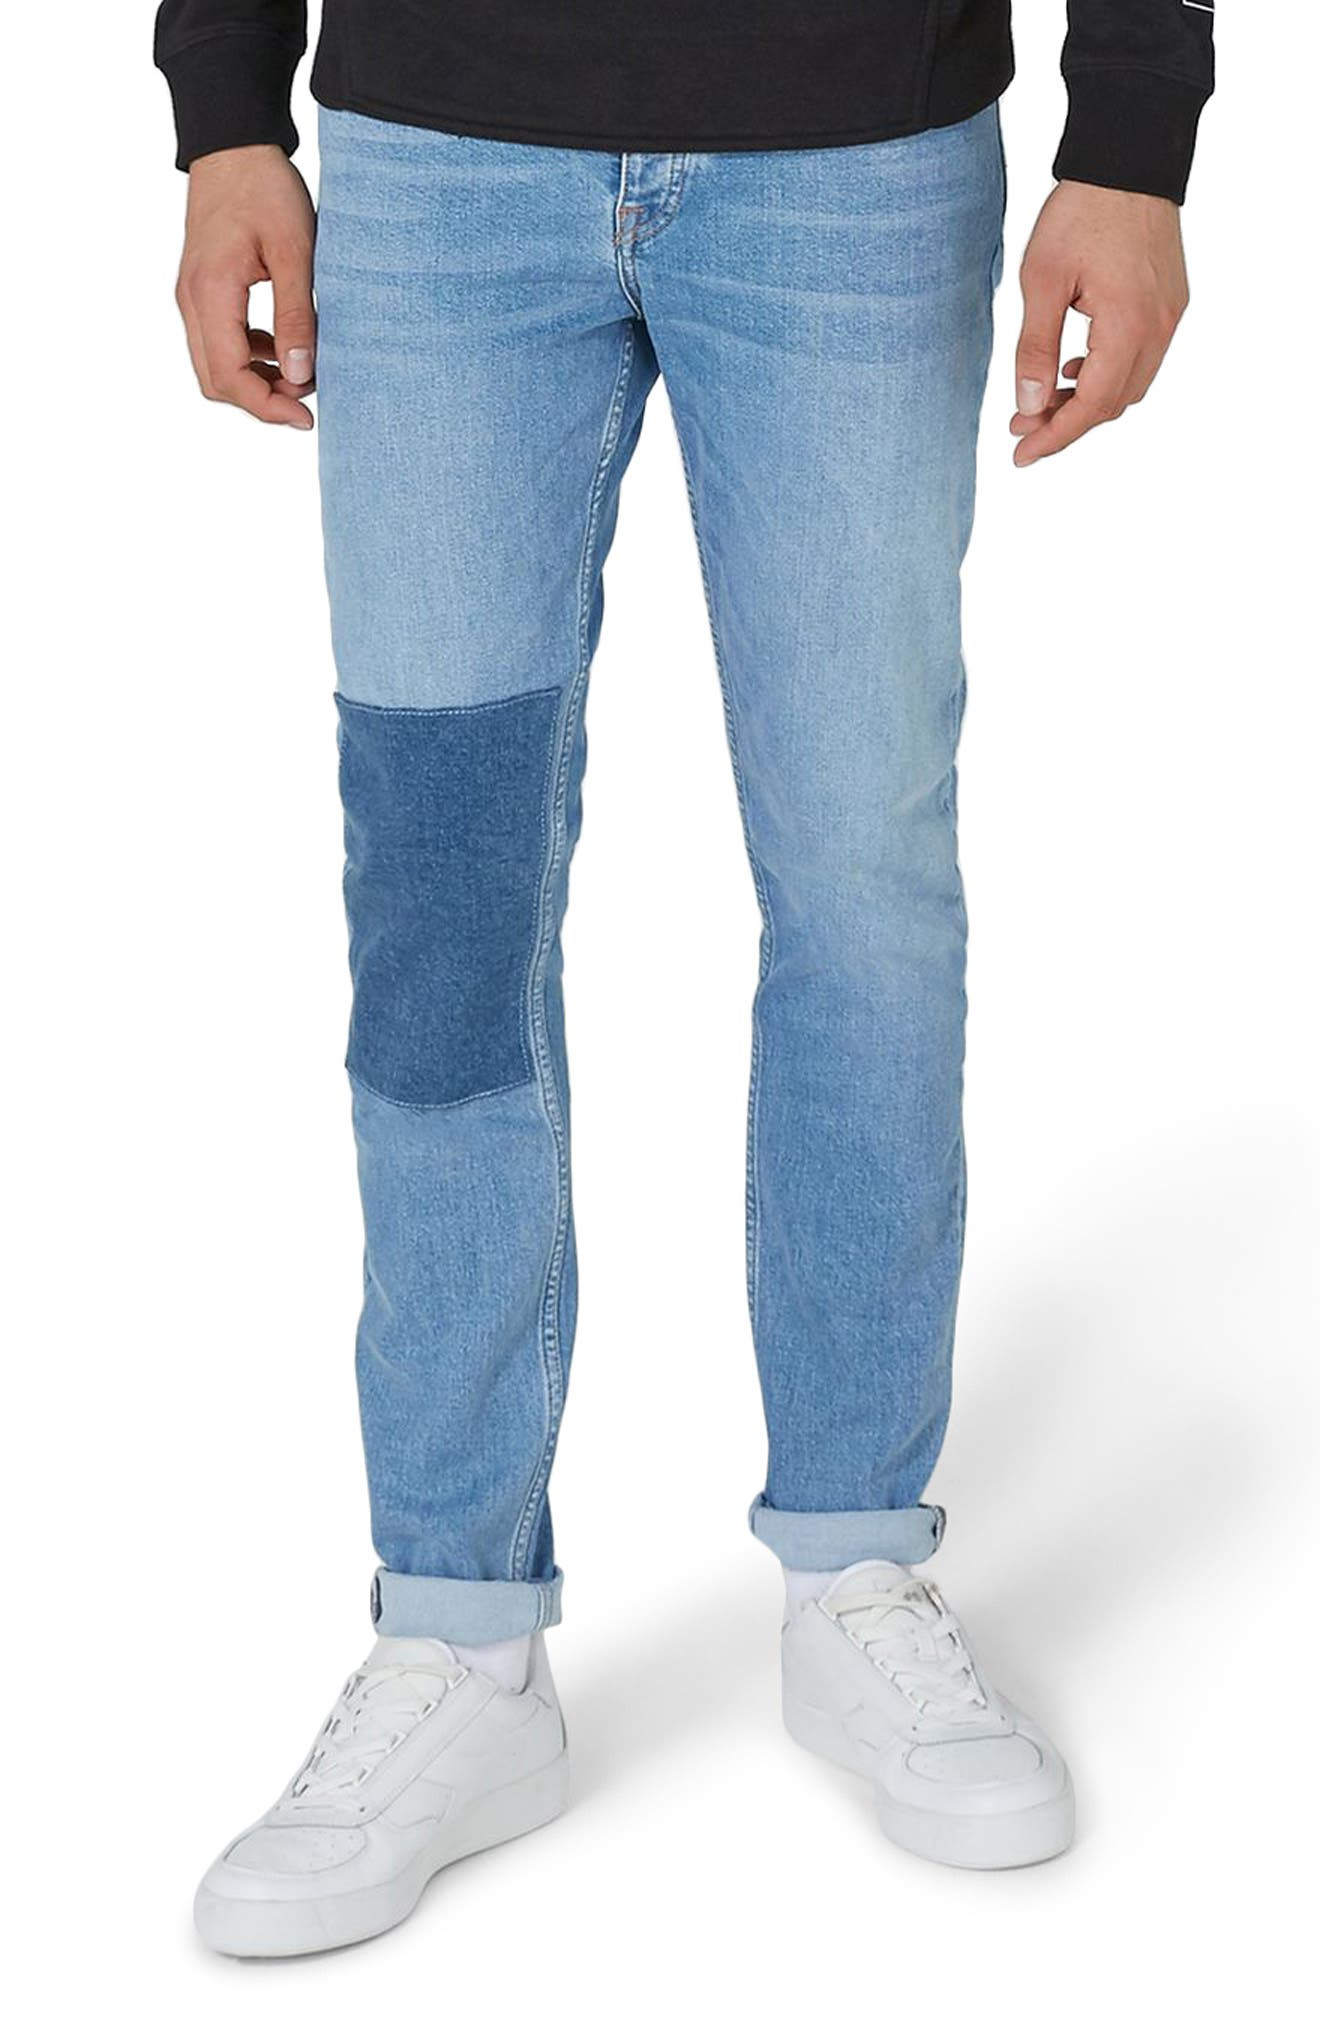 Patch Stretch Skinny Jeans,                         Main,                         color, Blue